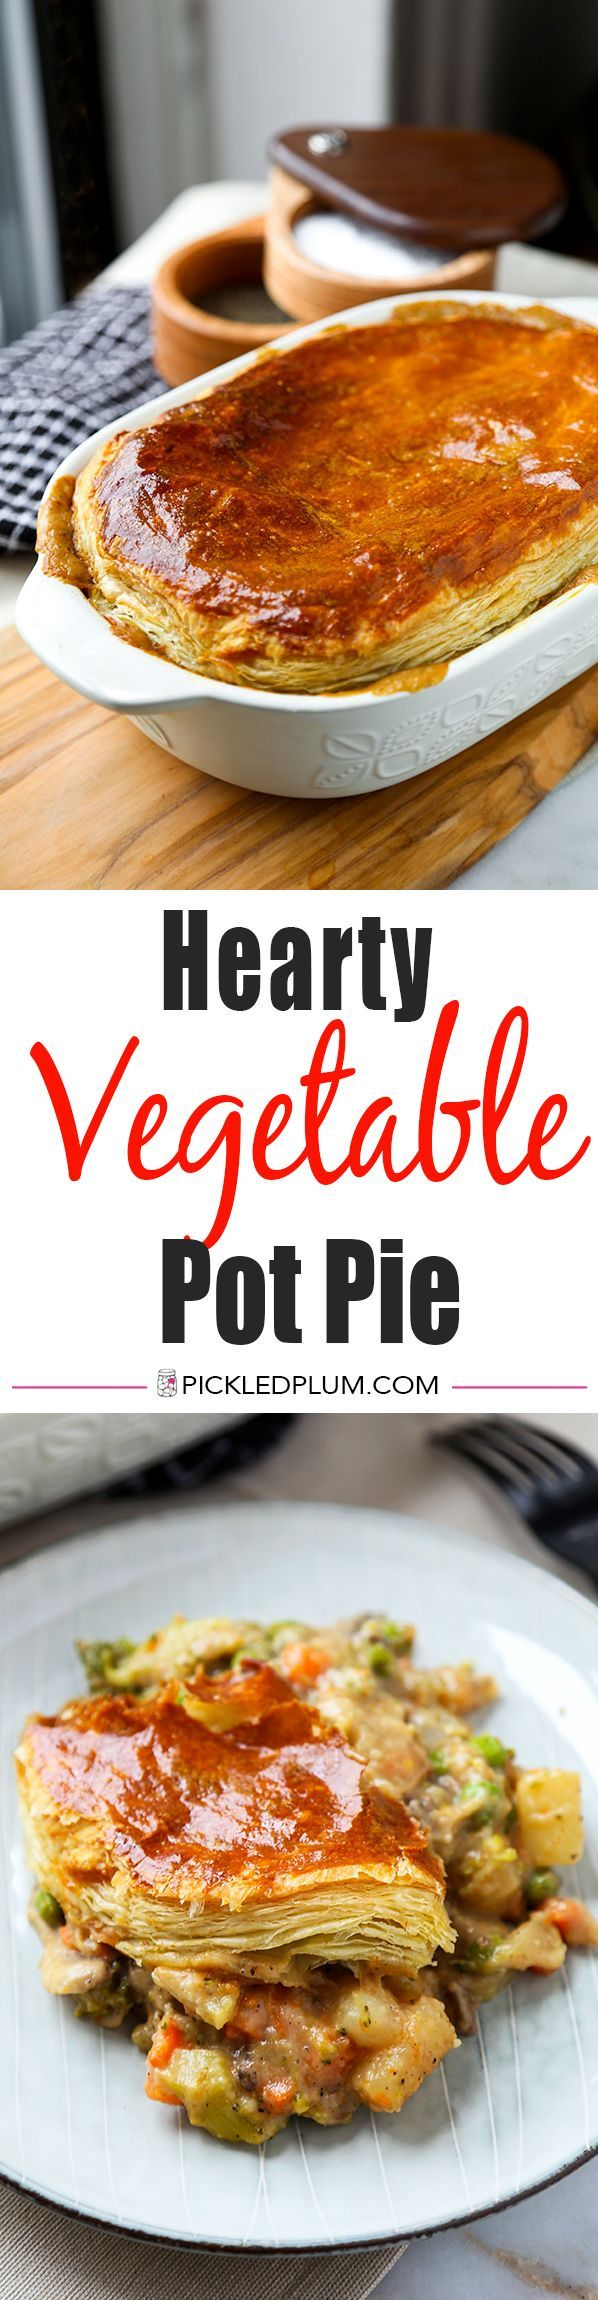 Hearty Vegetable Pot Pie - This hearty vegetable pot pie with creamy mushroom sauce and topped with puff pastry is guaranteed to keep you warm this winter! Recipe, pie, baking, vegetables, dinner, main